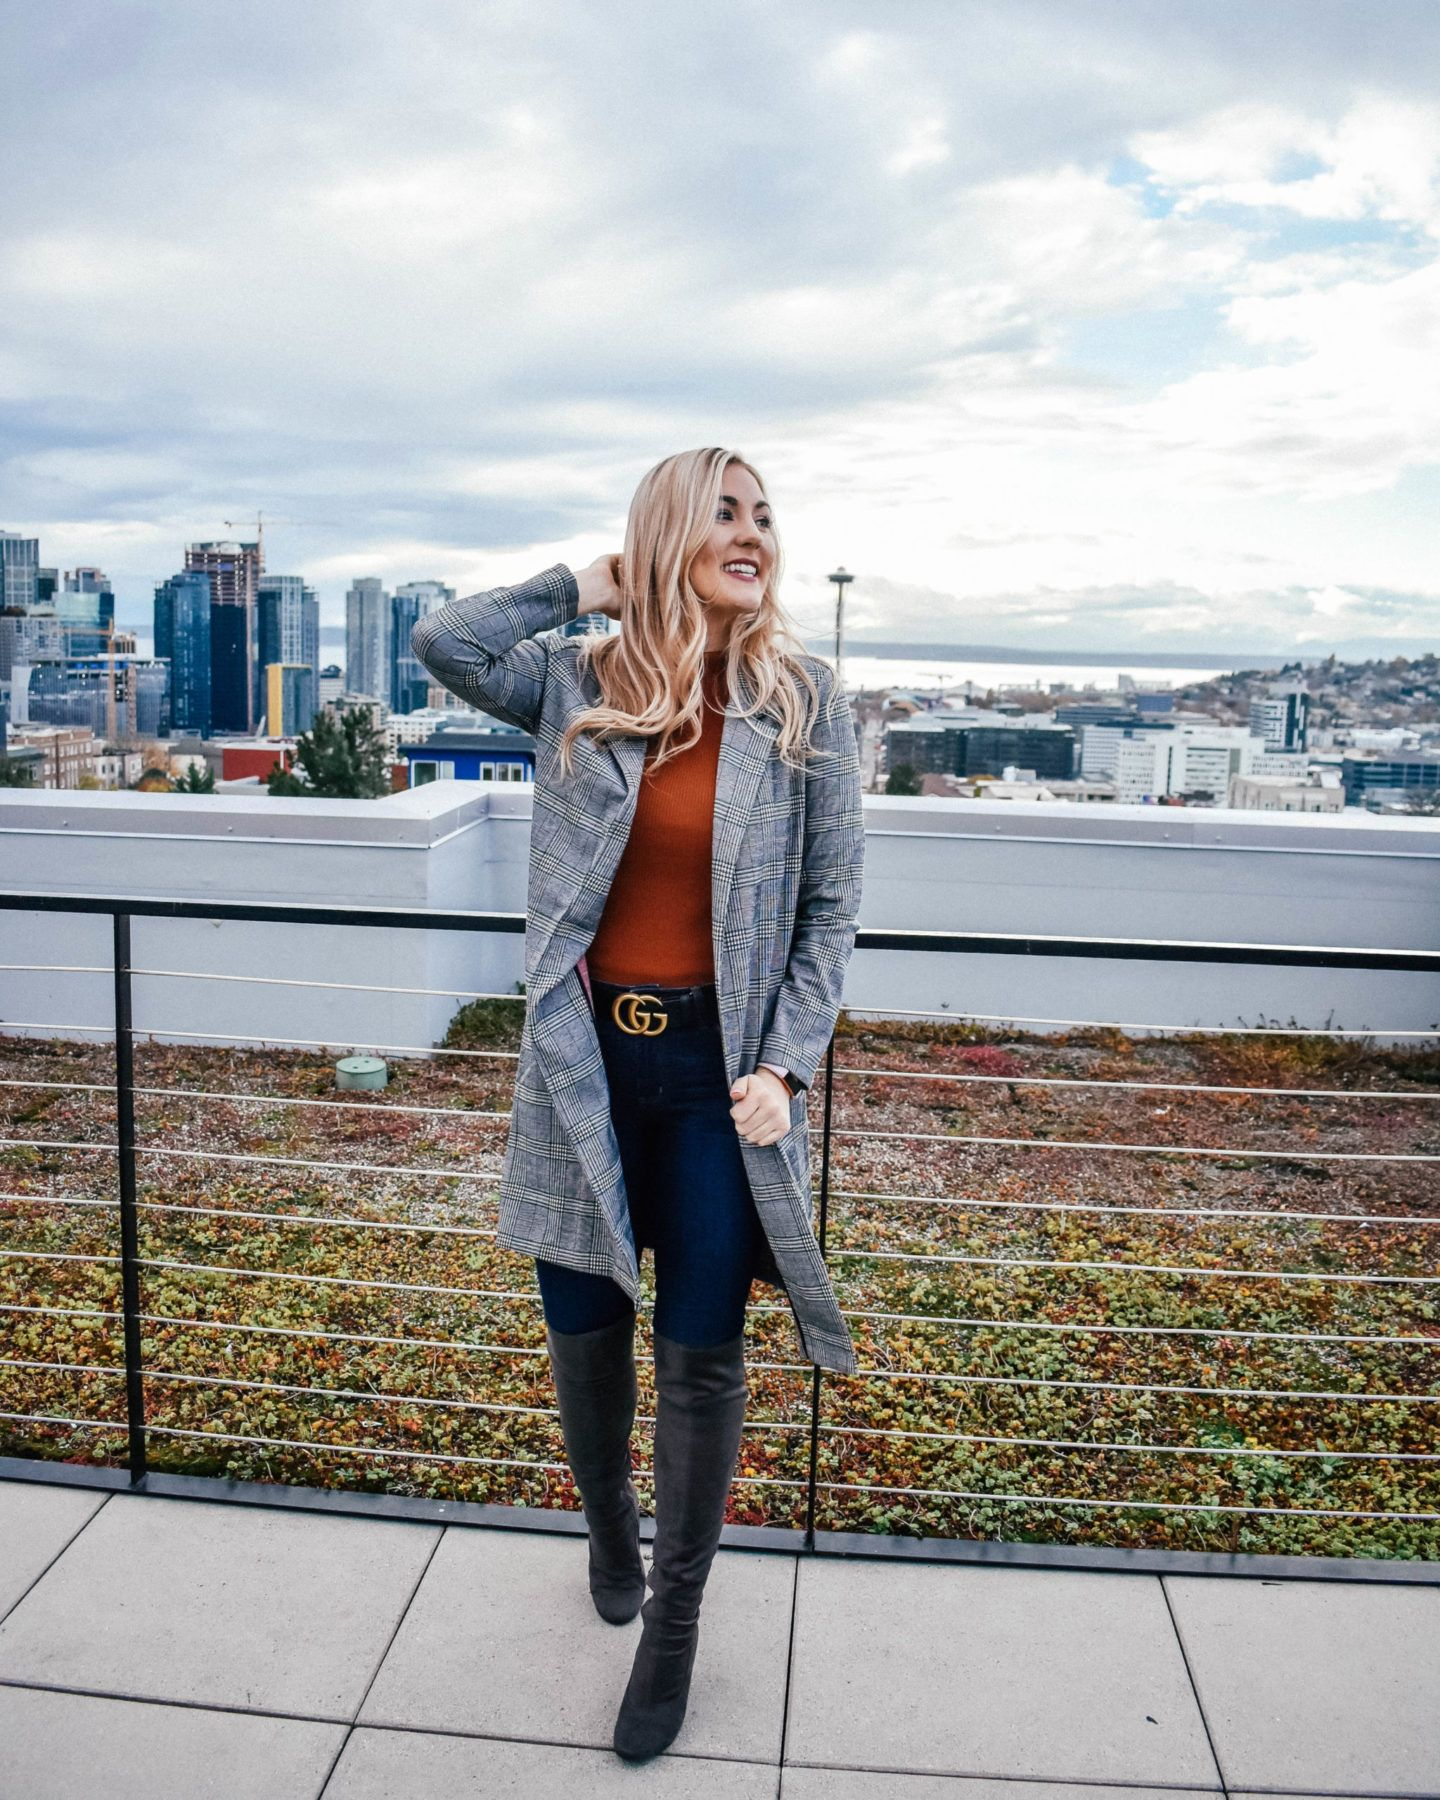 Instagram Roundup: 35 Cute Outfit Ideas